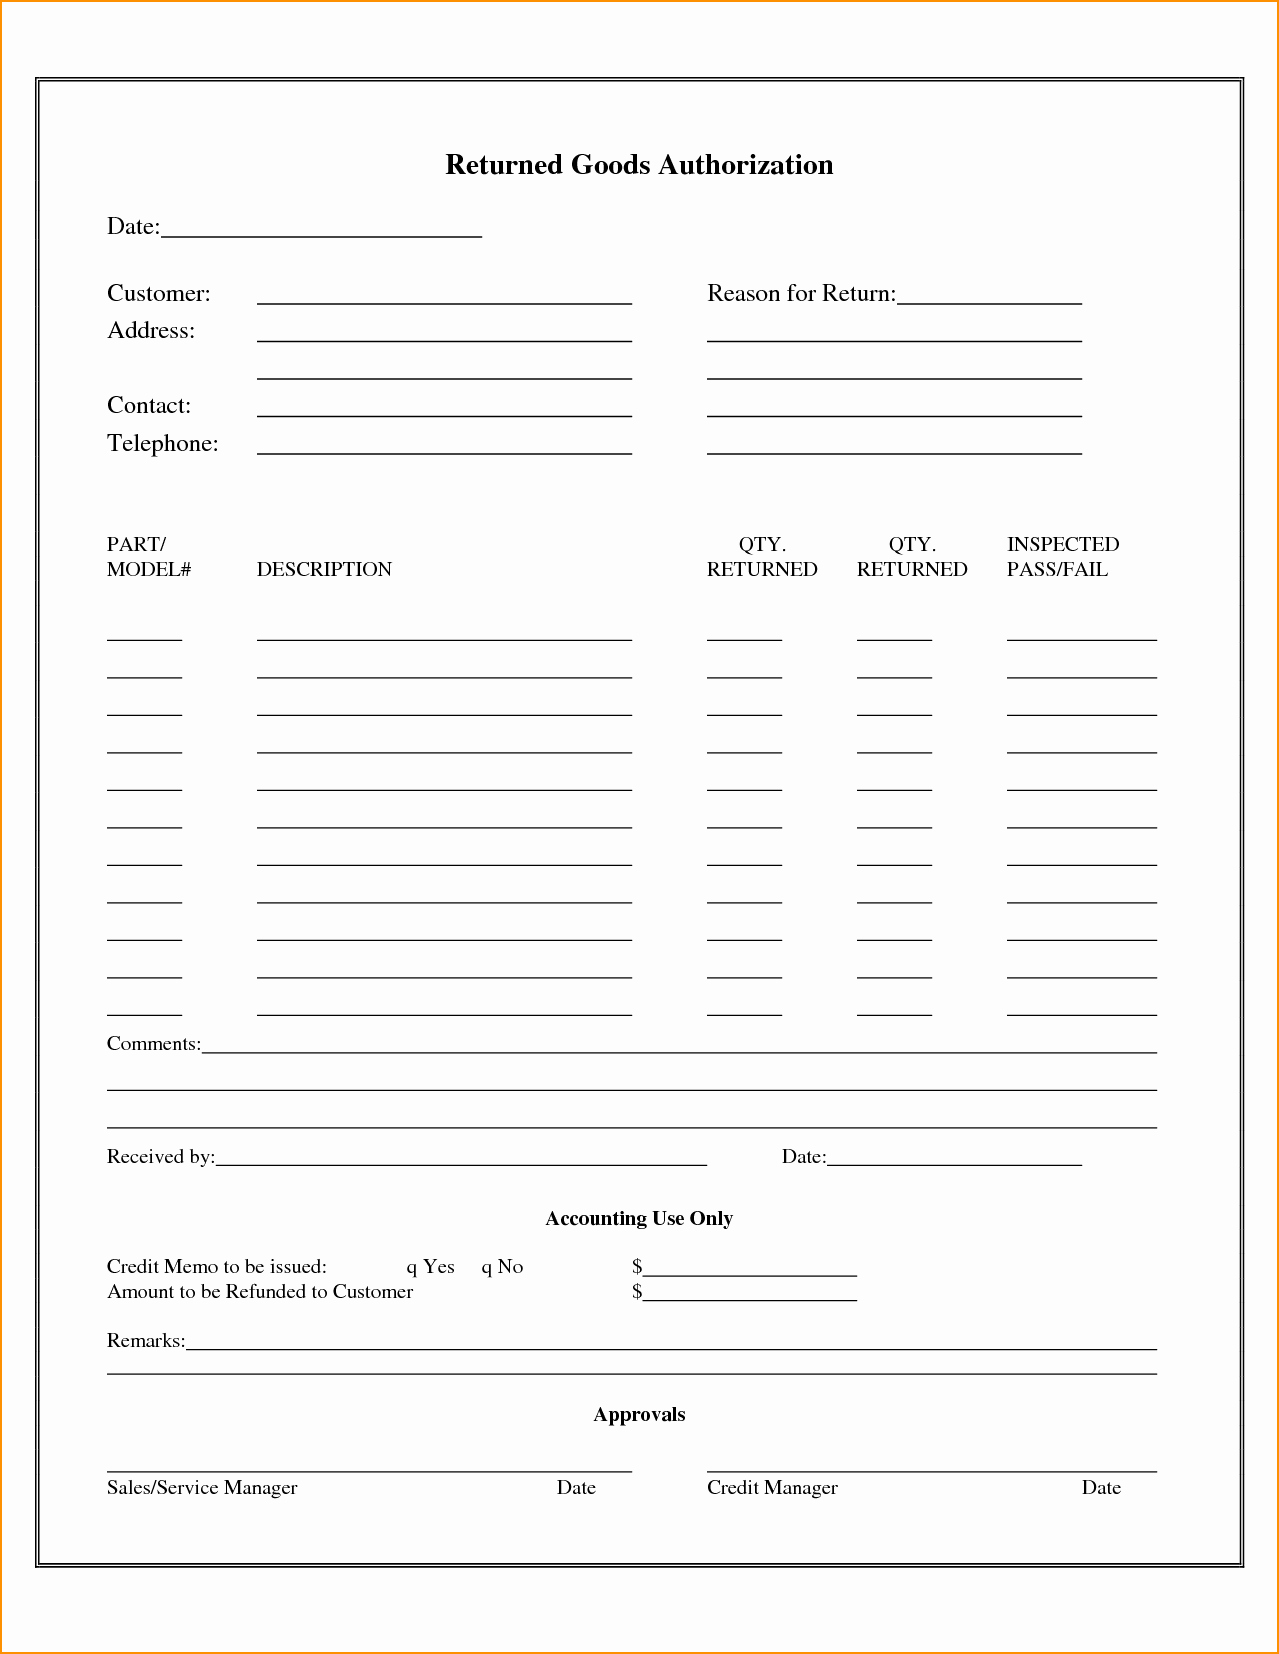 Return Authorization form Template Awesome 24 Of Return Authorization form Template In Word